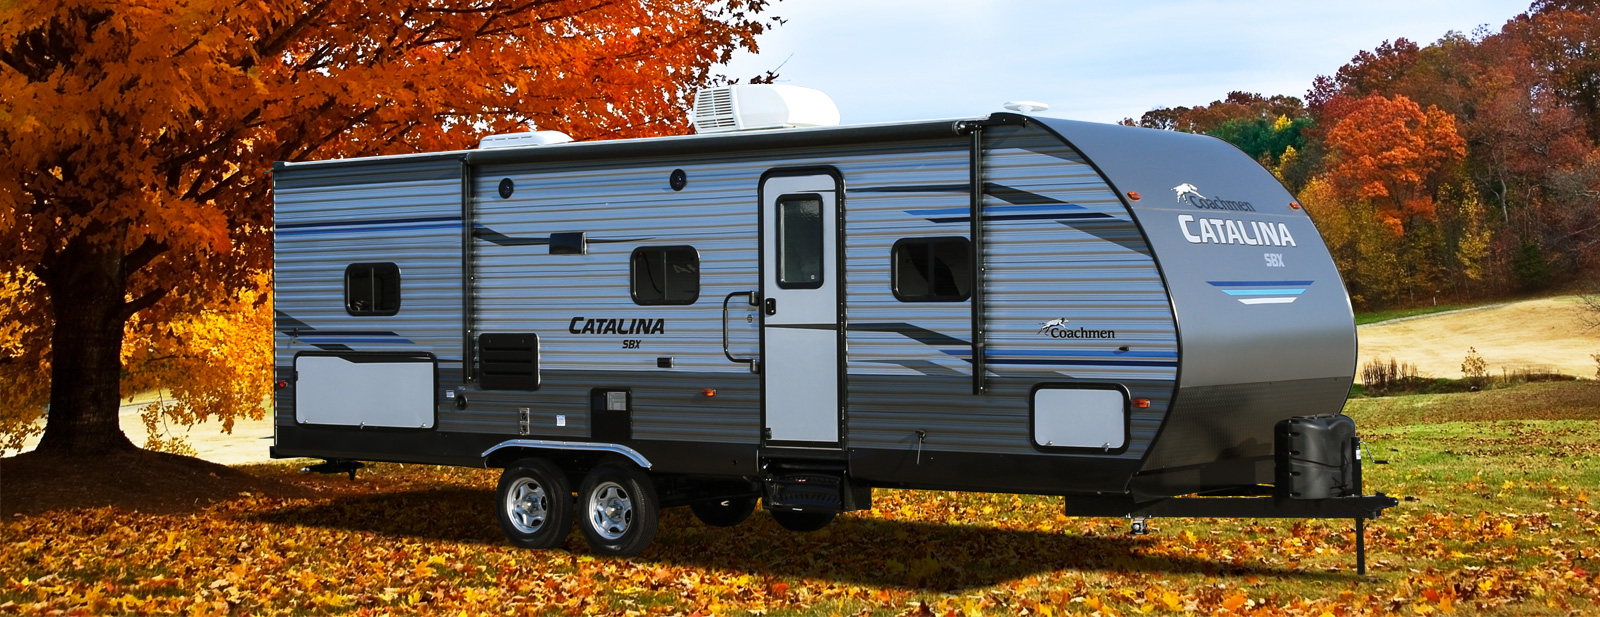 Catalina Sbx Travel Trailers By Coachmen Rv